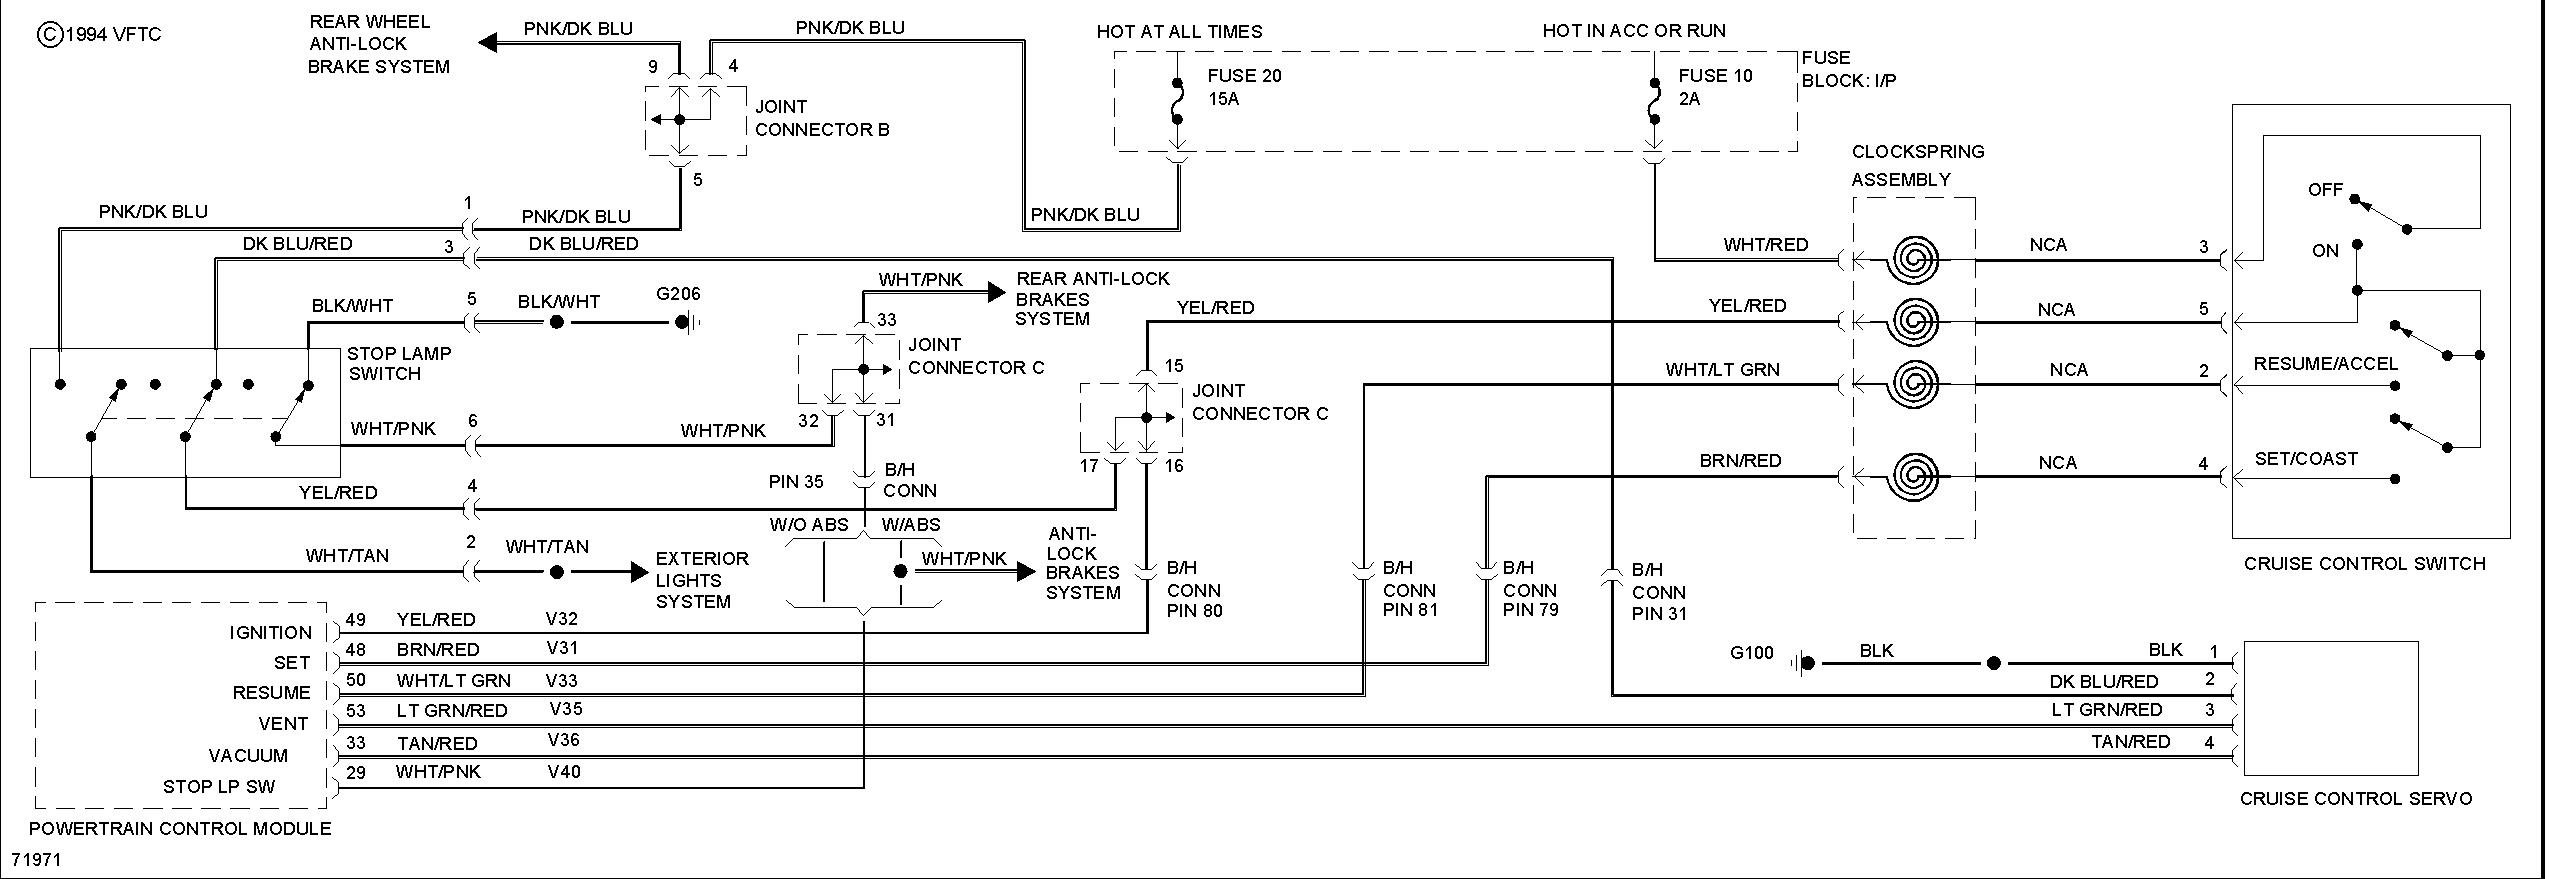 wiring diagram for 2001 dodge ram 2500 the wiring diagram i had my 1995 dodge ram 2500 4x4 cummins diesel converted from wiring diagram